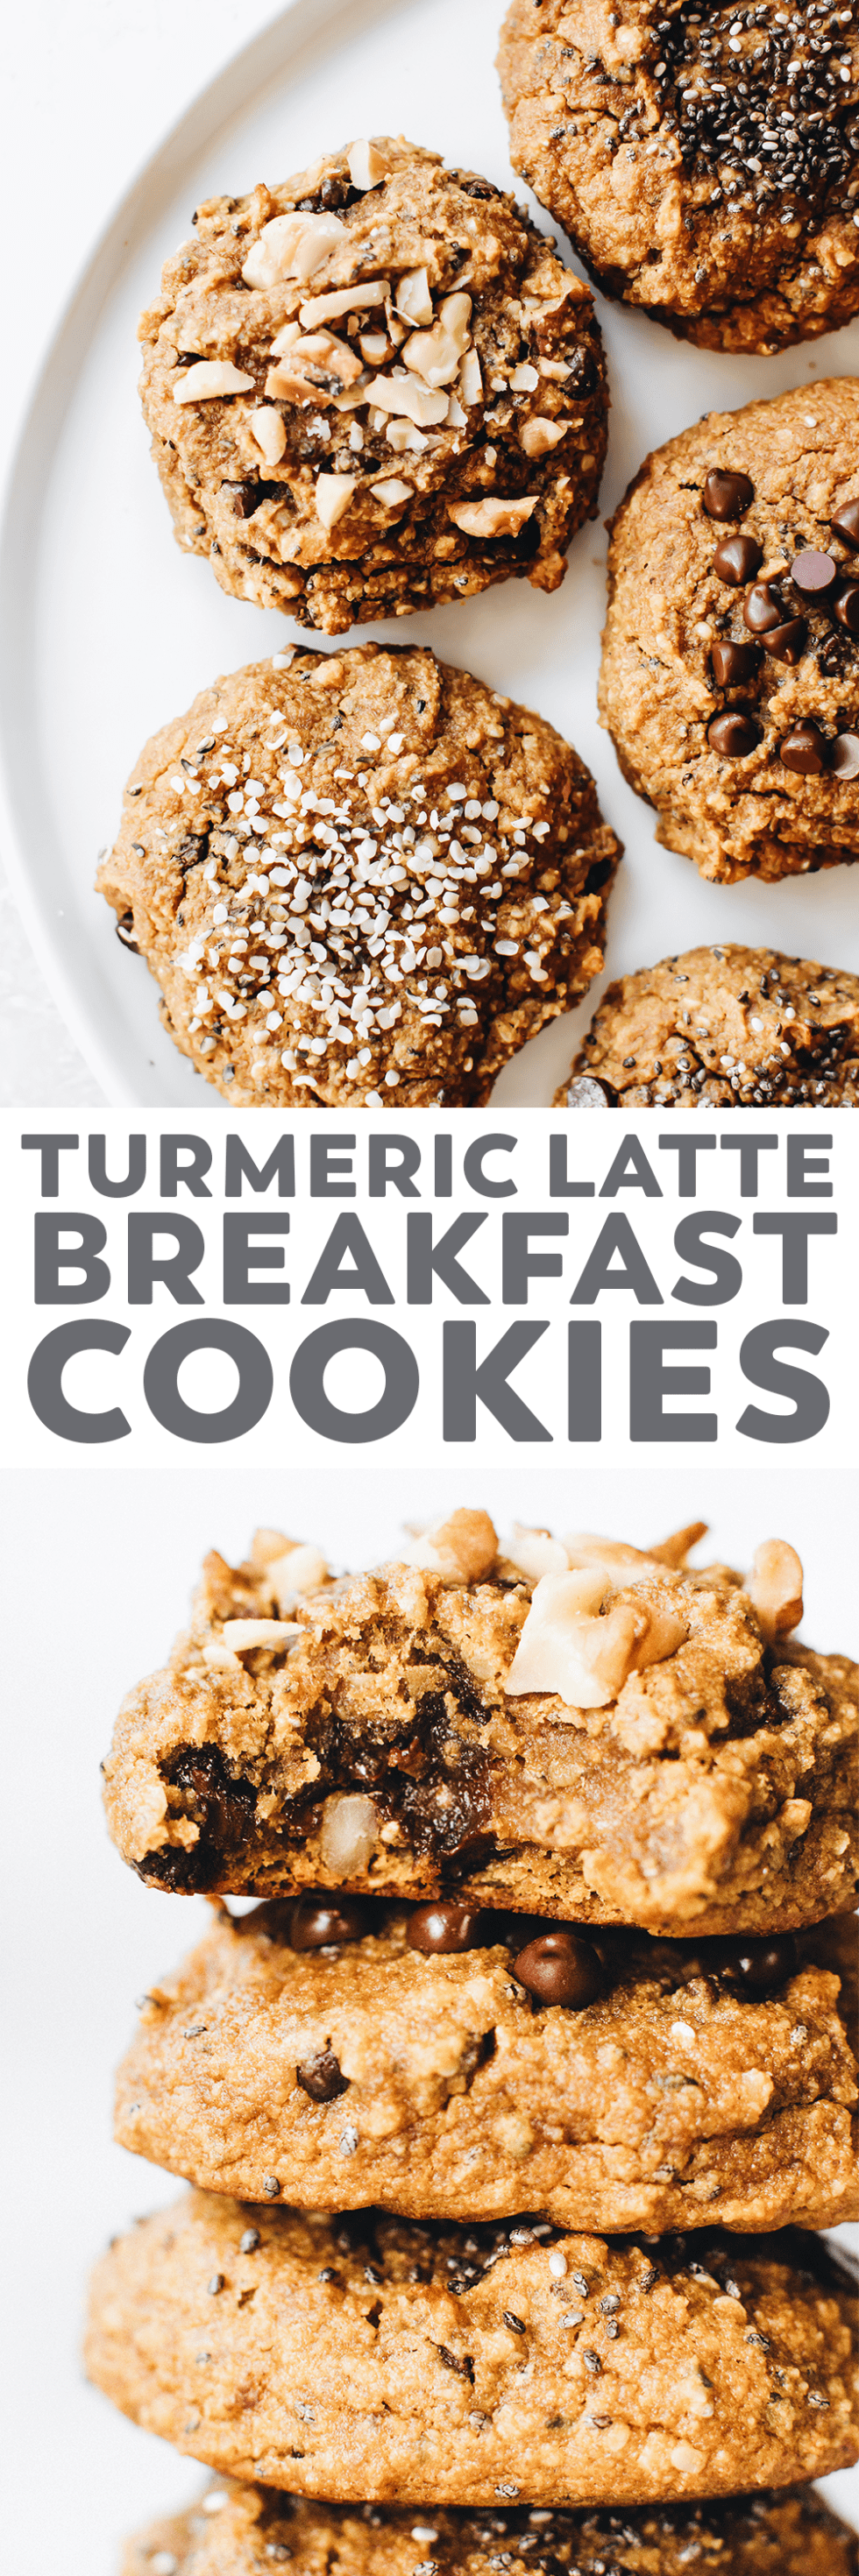 Soft, spiced turmeric cookies with a latte-inspired coffee kick! Easy to make. Customizable mix-in options. Snack, breakfast, or dessert. #vegan #recipe #glutenfree #paleo #grainfree #cookies #turmeric #healthy #snack #breakfast